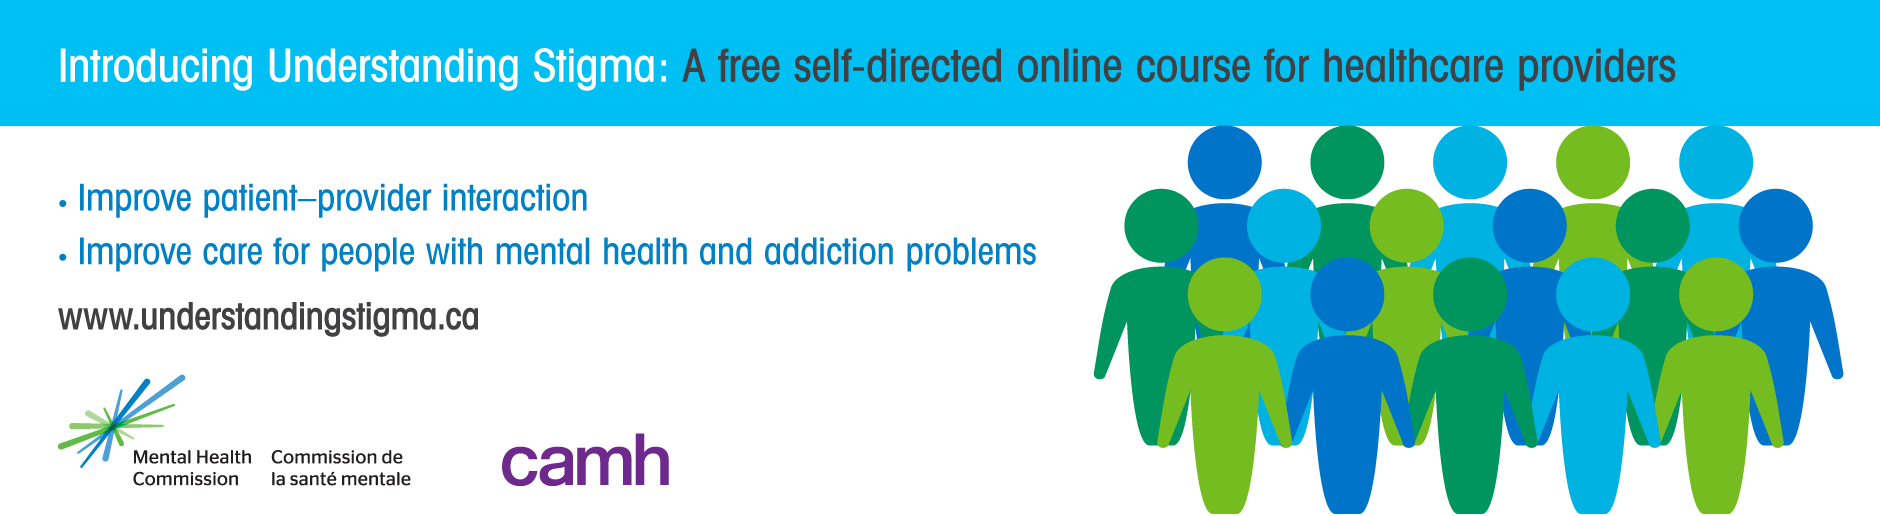 Introducing Understanding Stigma: A free self-directed online course for healthcare providers